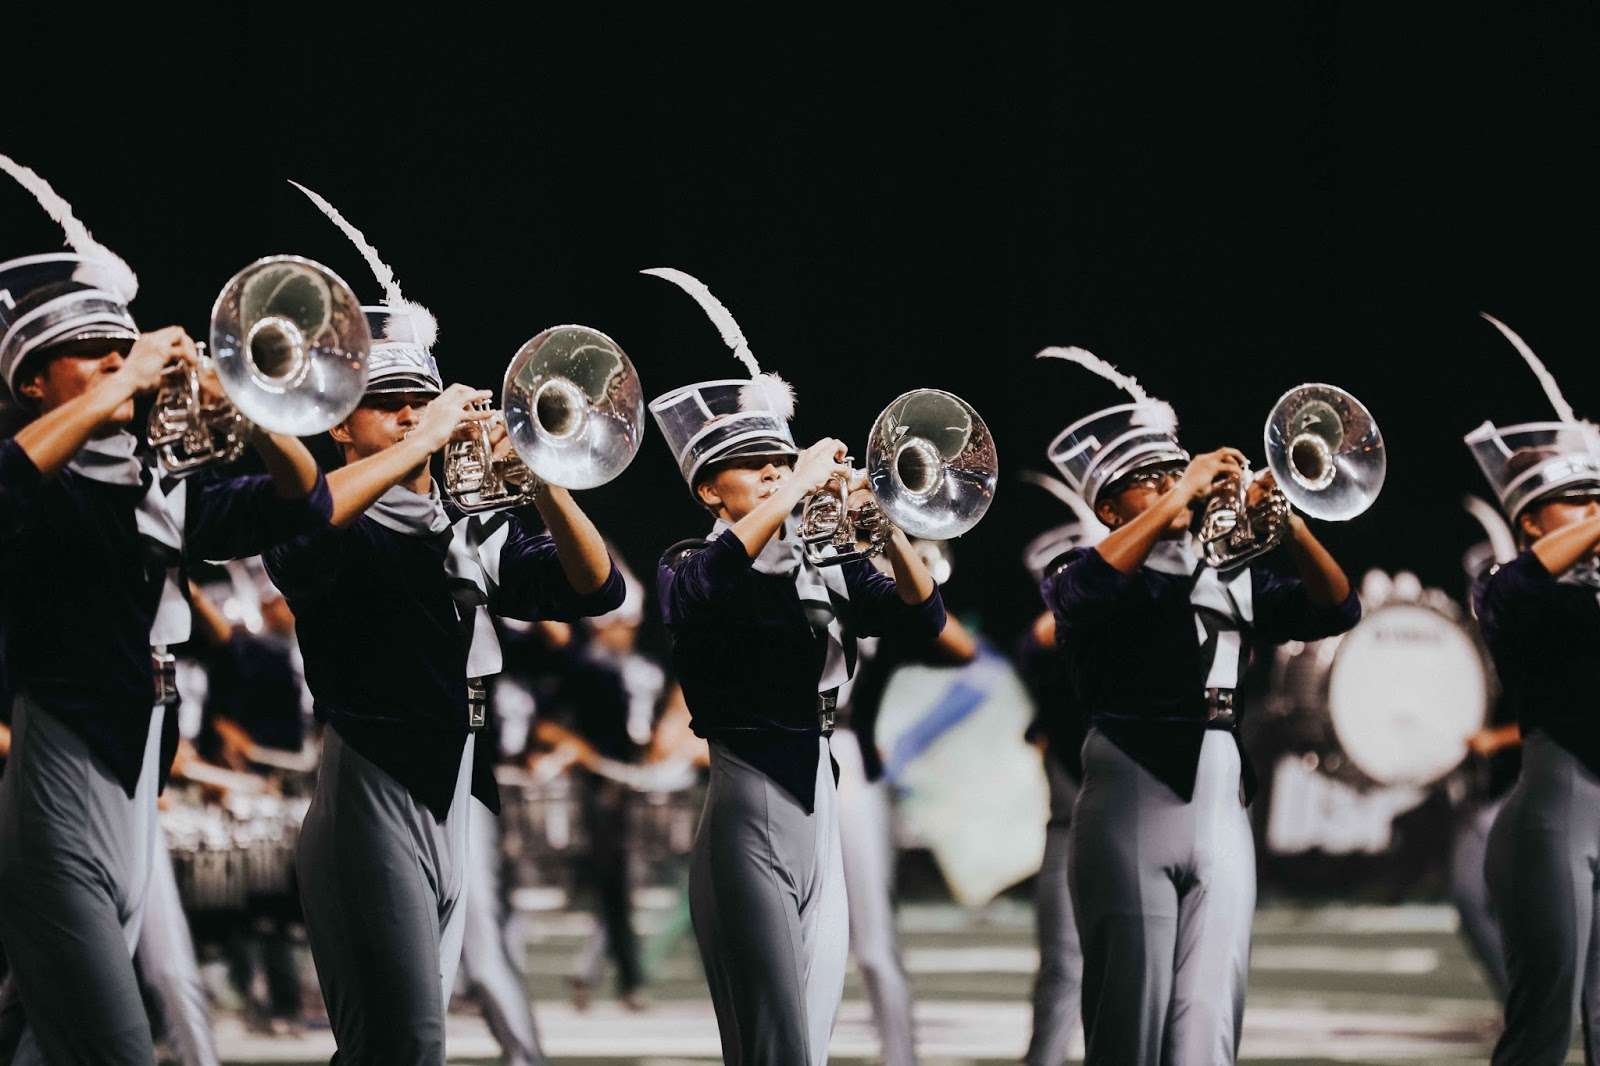 Carolina Crown brass performs at DCI World Finals